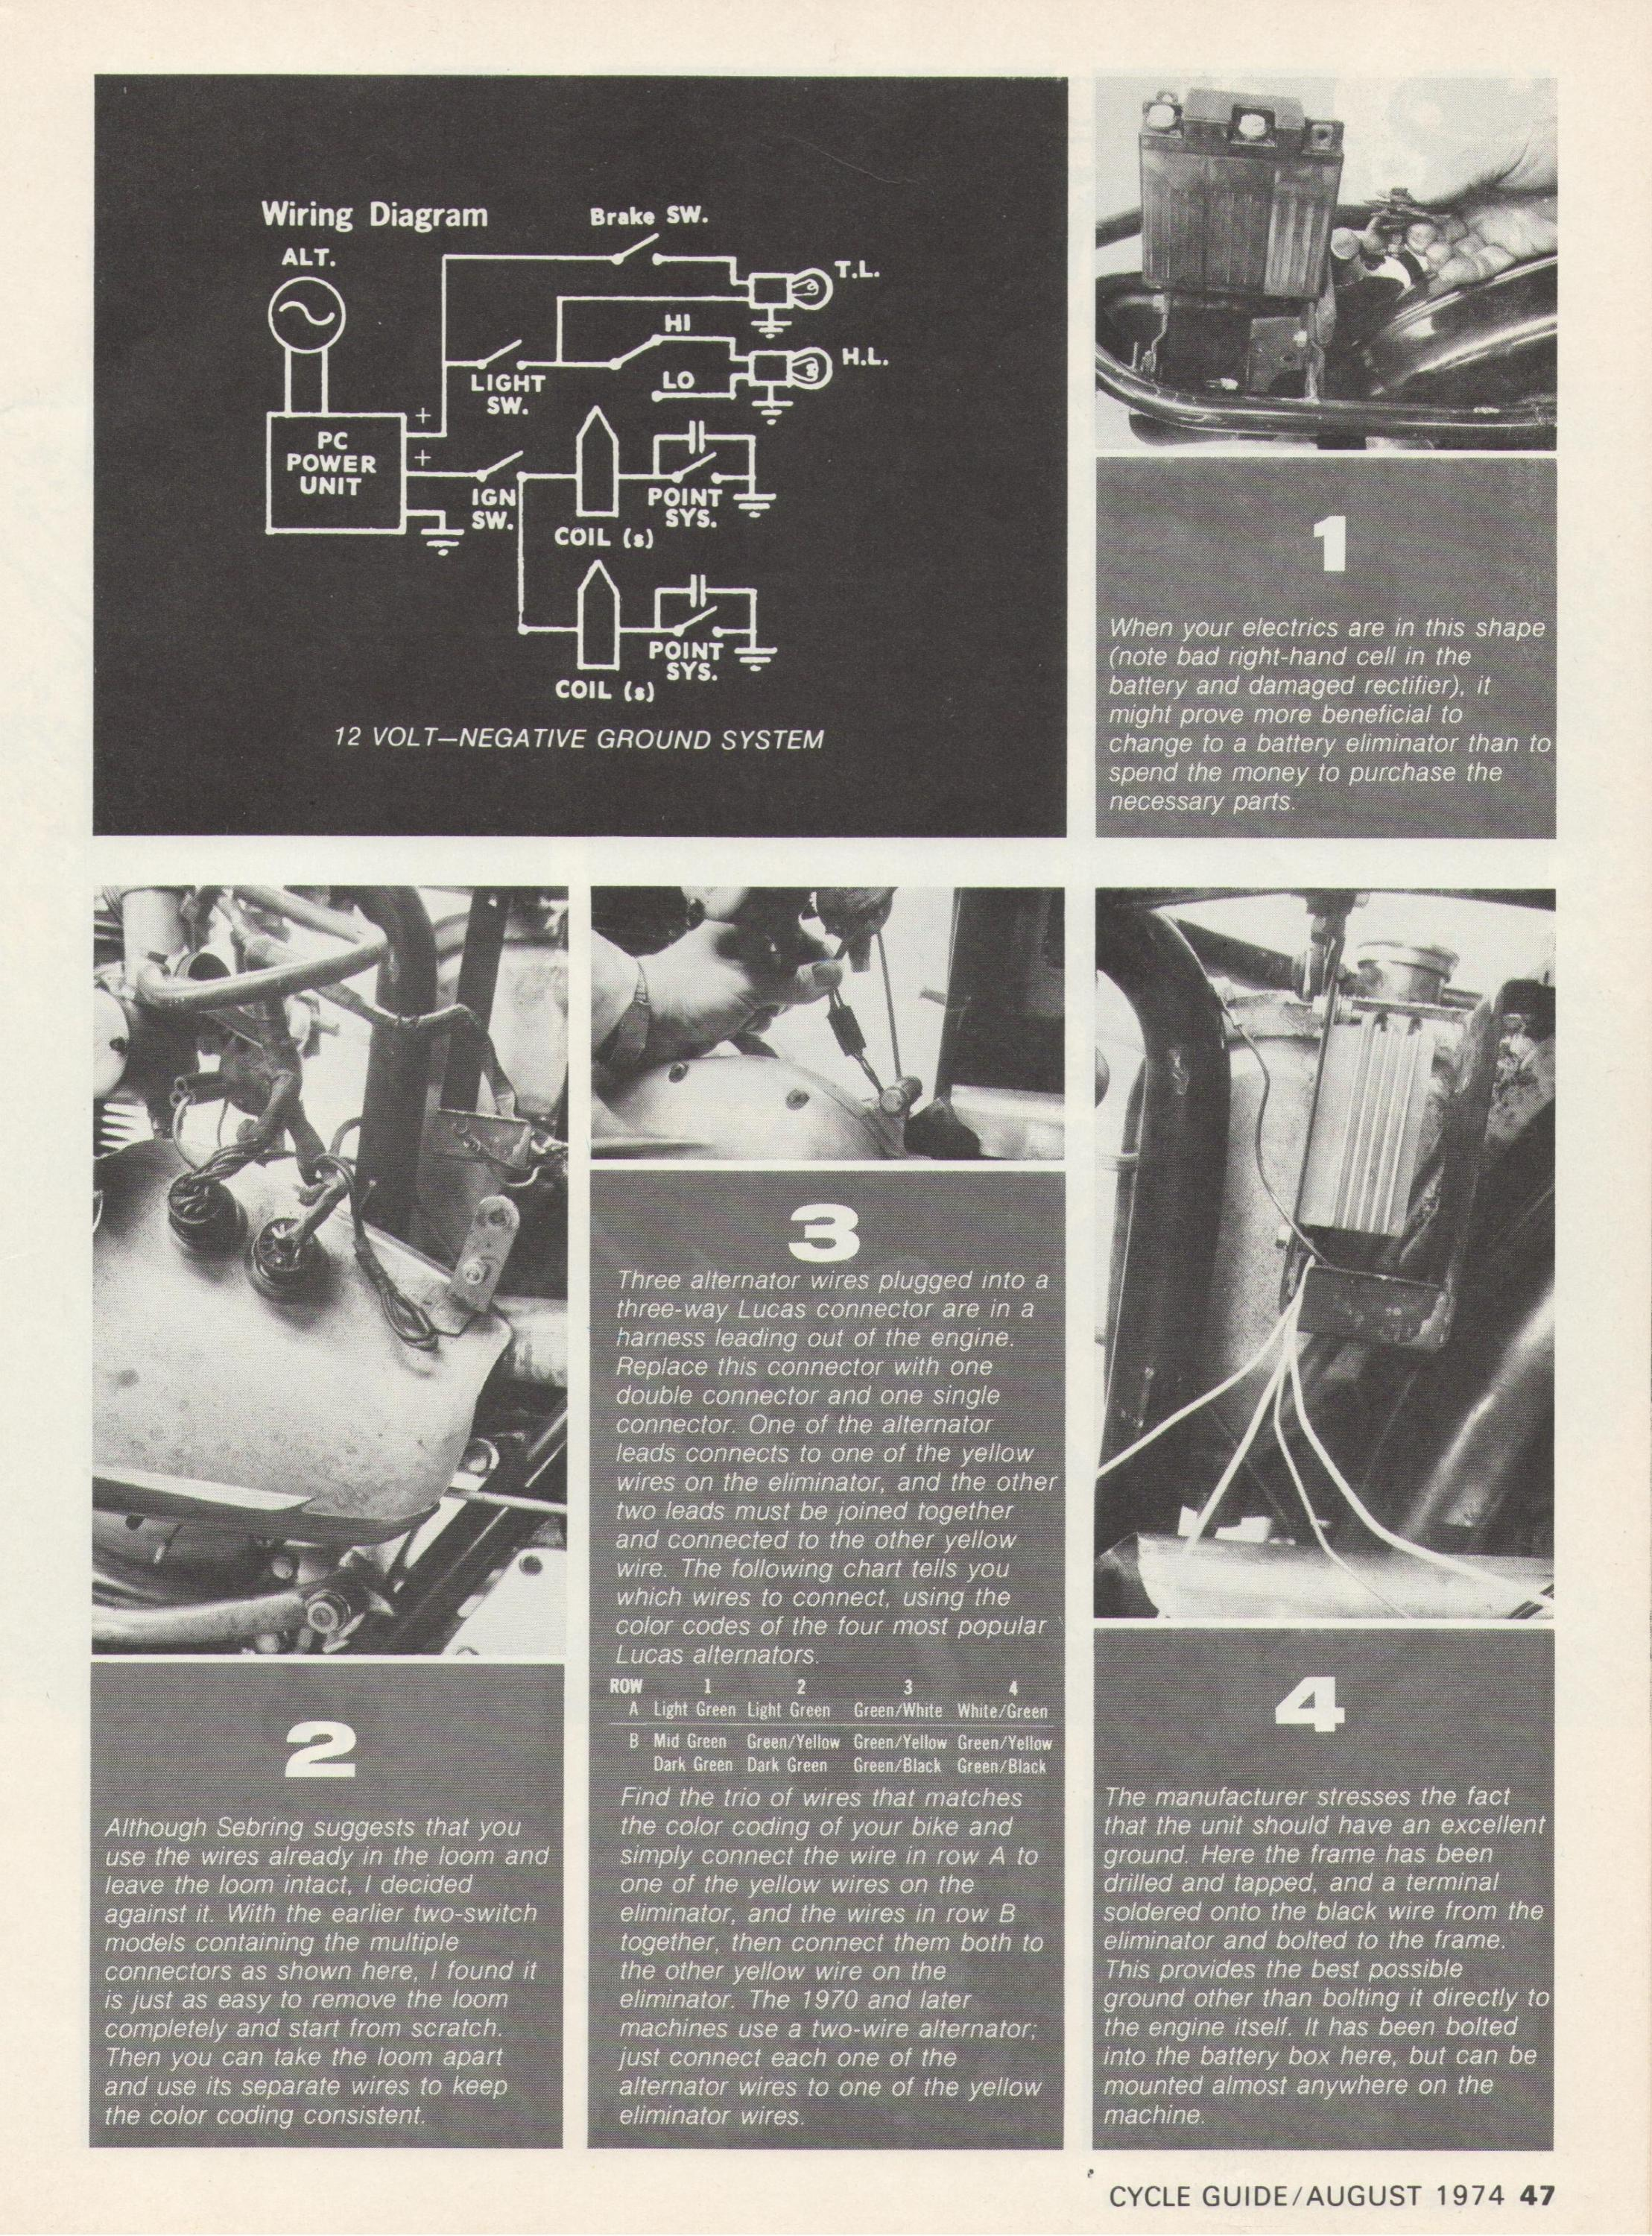 installing a battery eliminator tech article cycle guide magazine August 1974-battery-eliminator-p.2.jpg